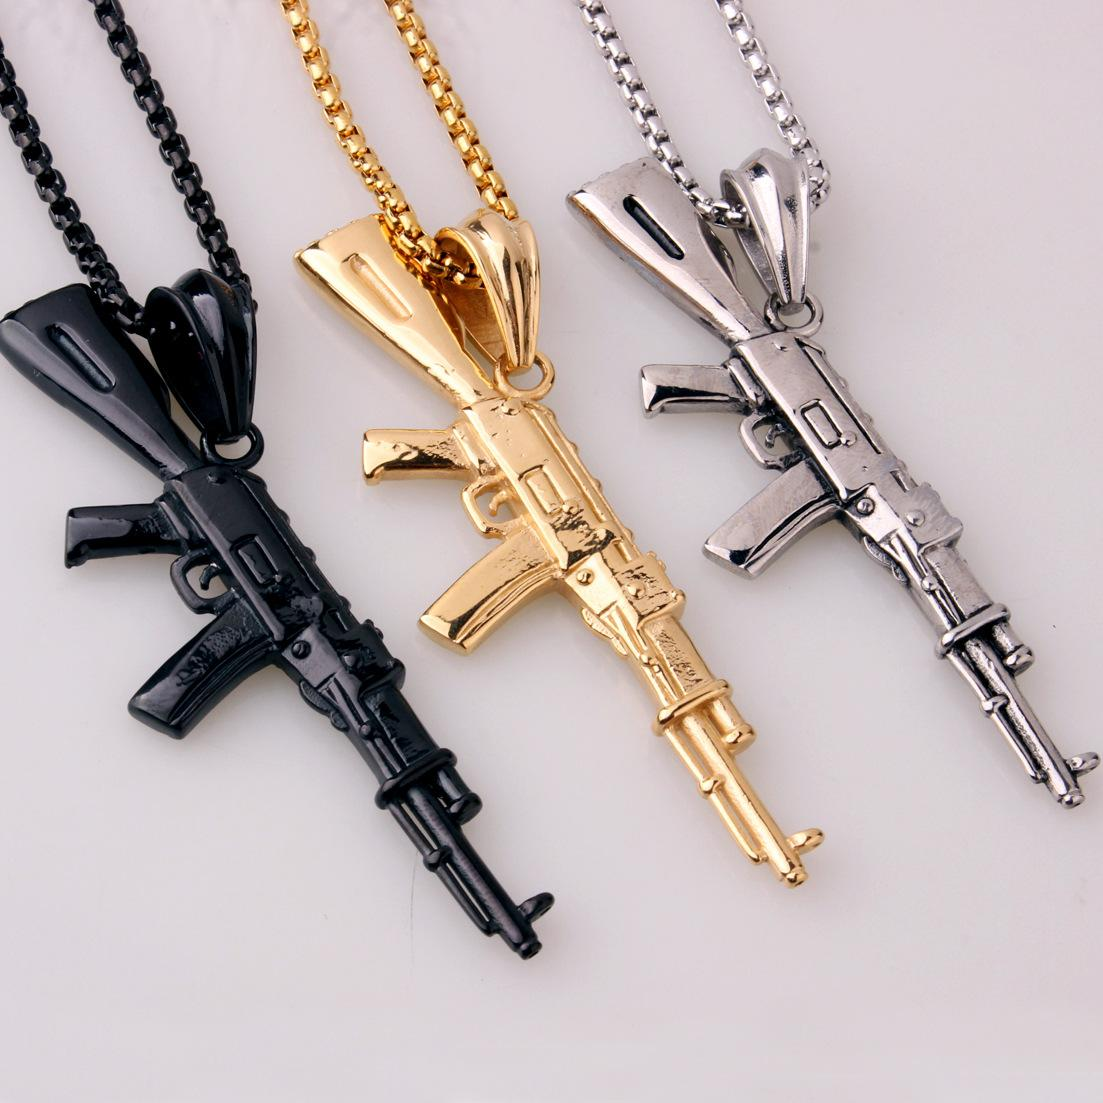 The Army Men's Jewelry Necklace Submachine Gun Hip-hop AK47 Assault Rifle Gold Black Titanium Steel Pendant